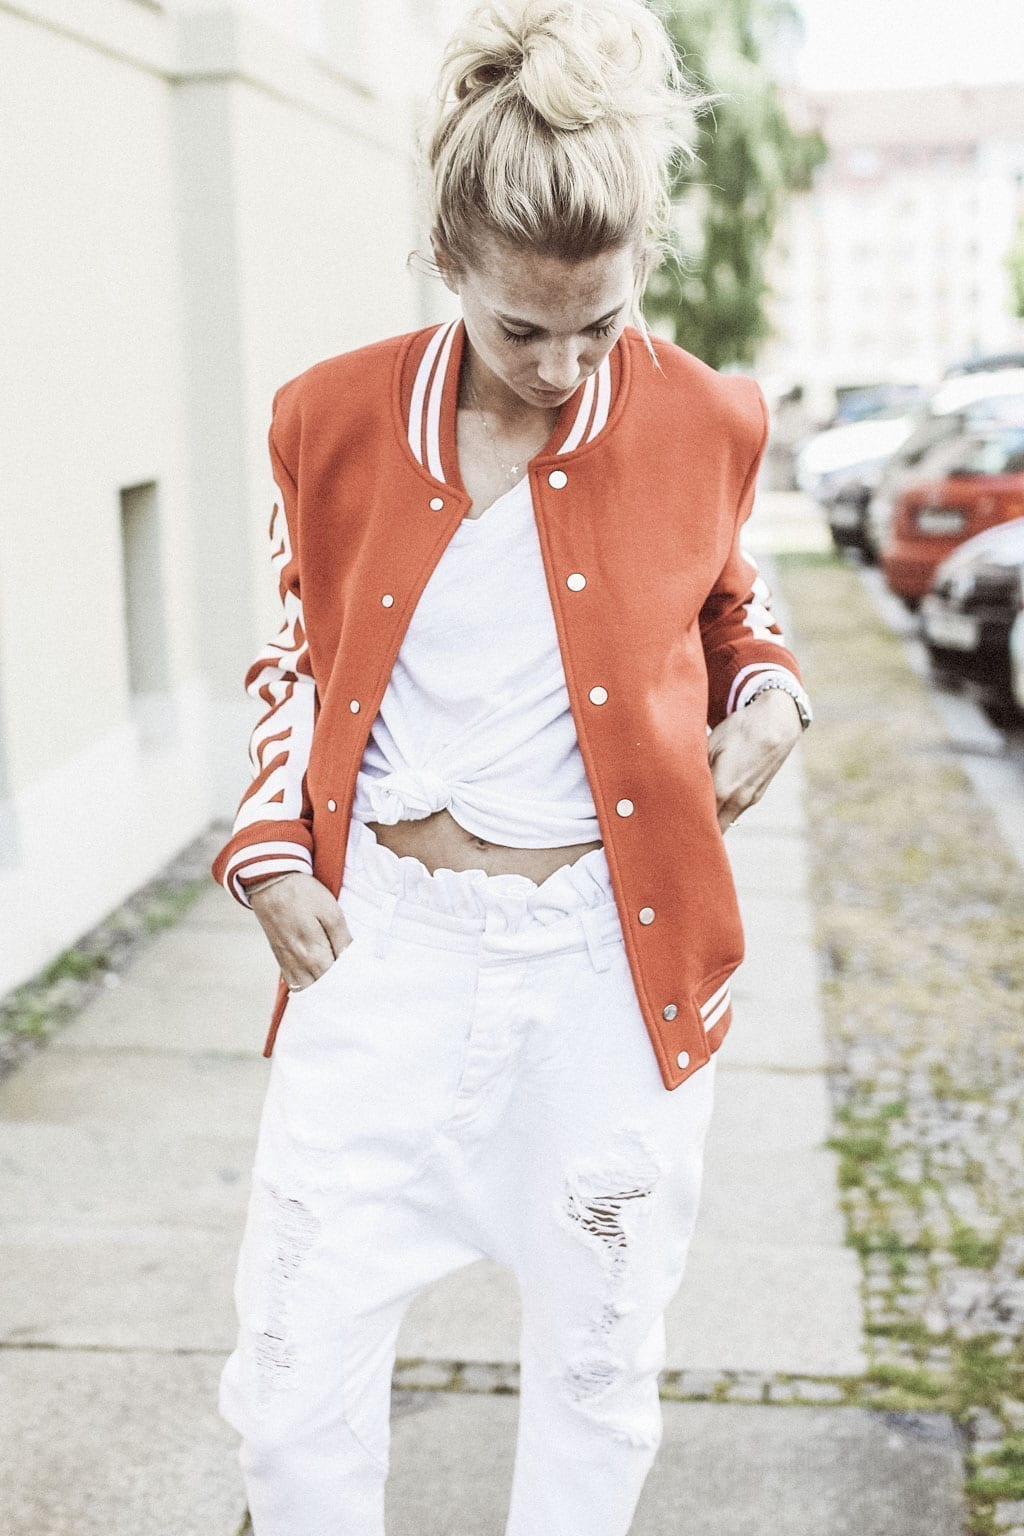 Constantly-K-karin-kaswurm-white-red-rieger-jacket-salzburg-fashion-street-style-8389